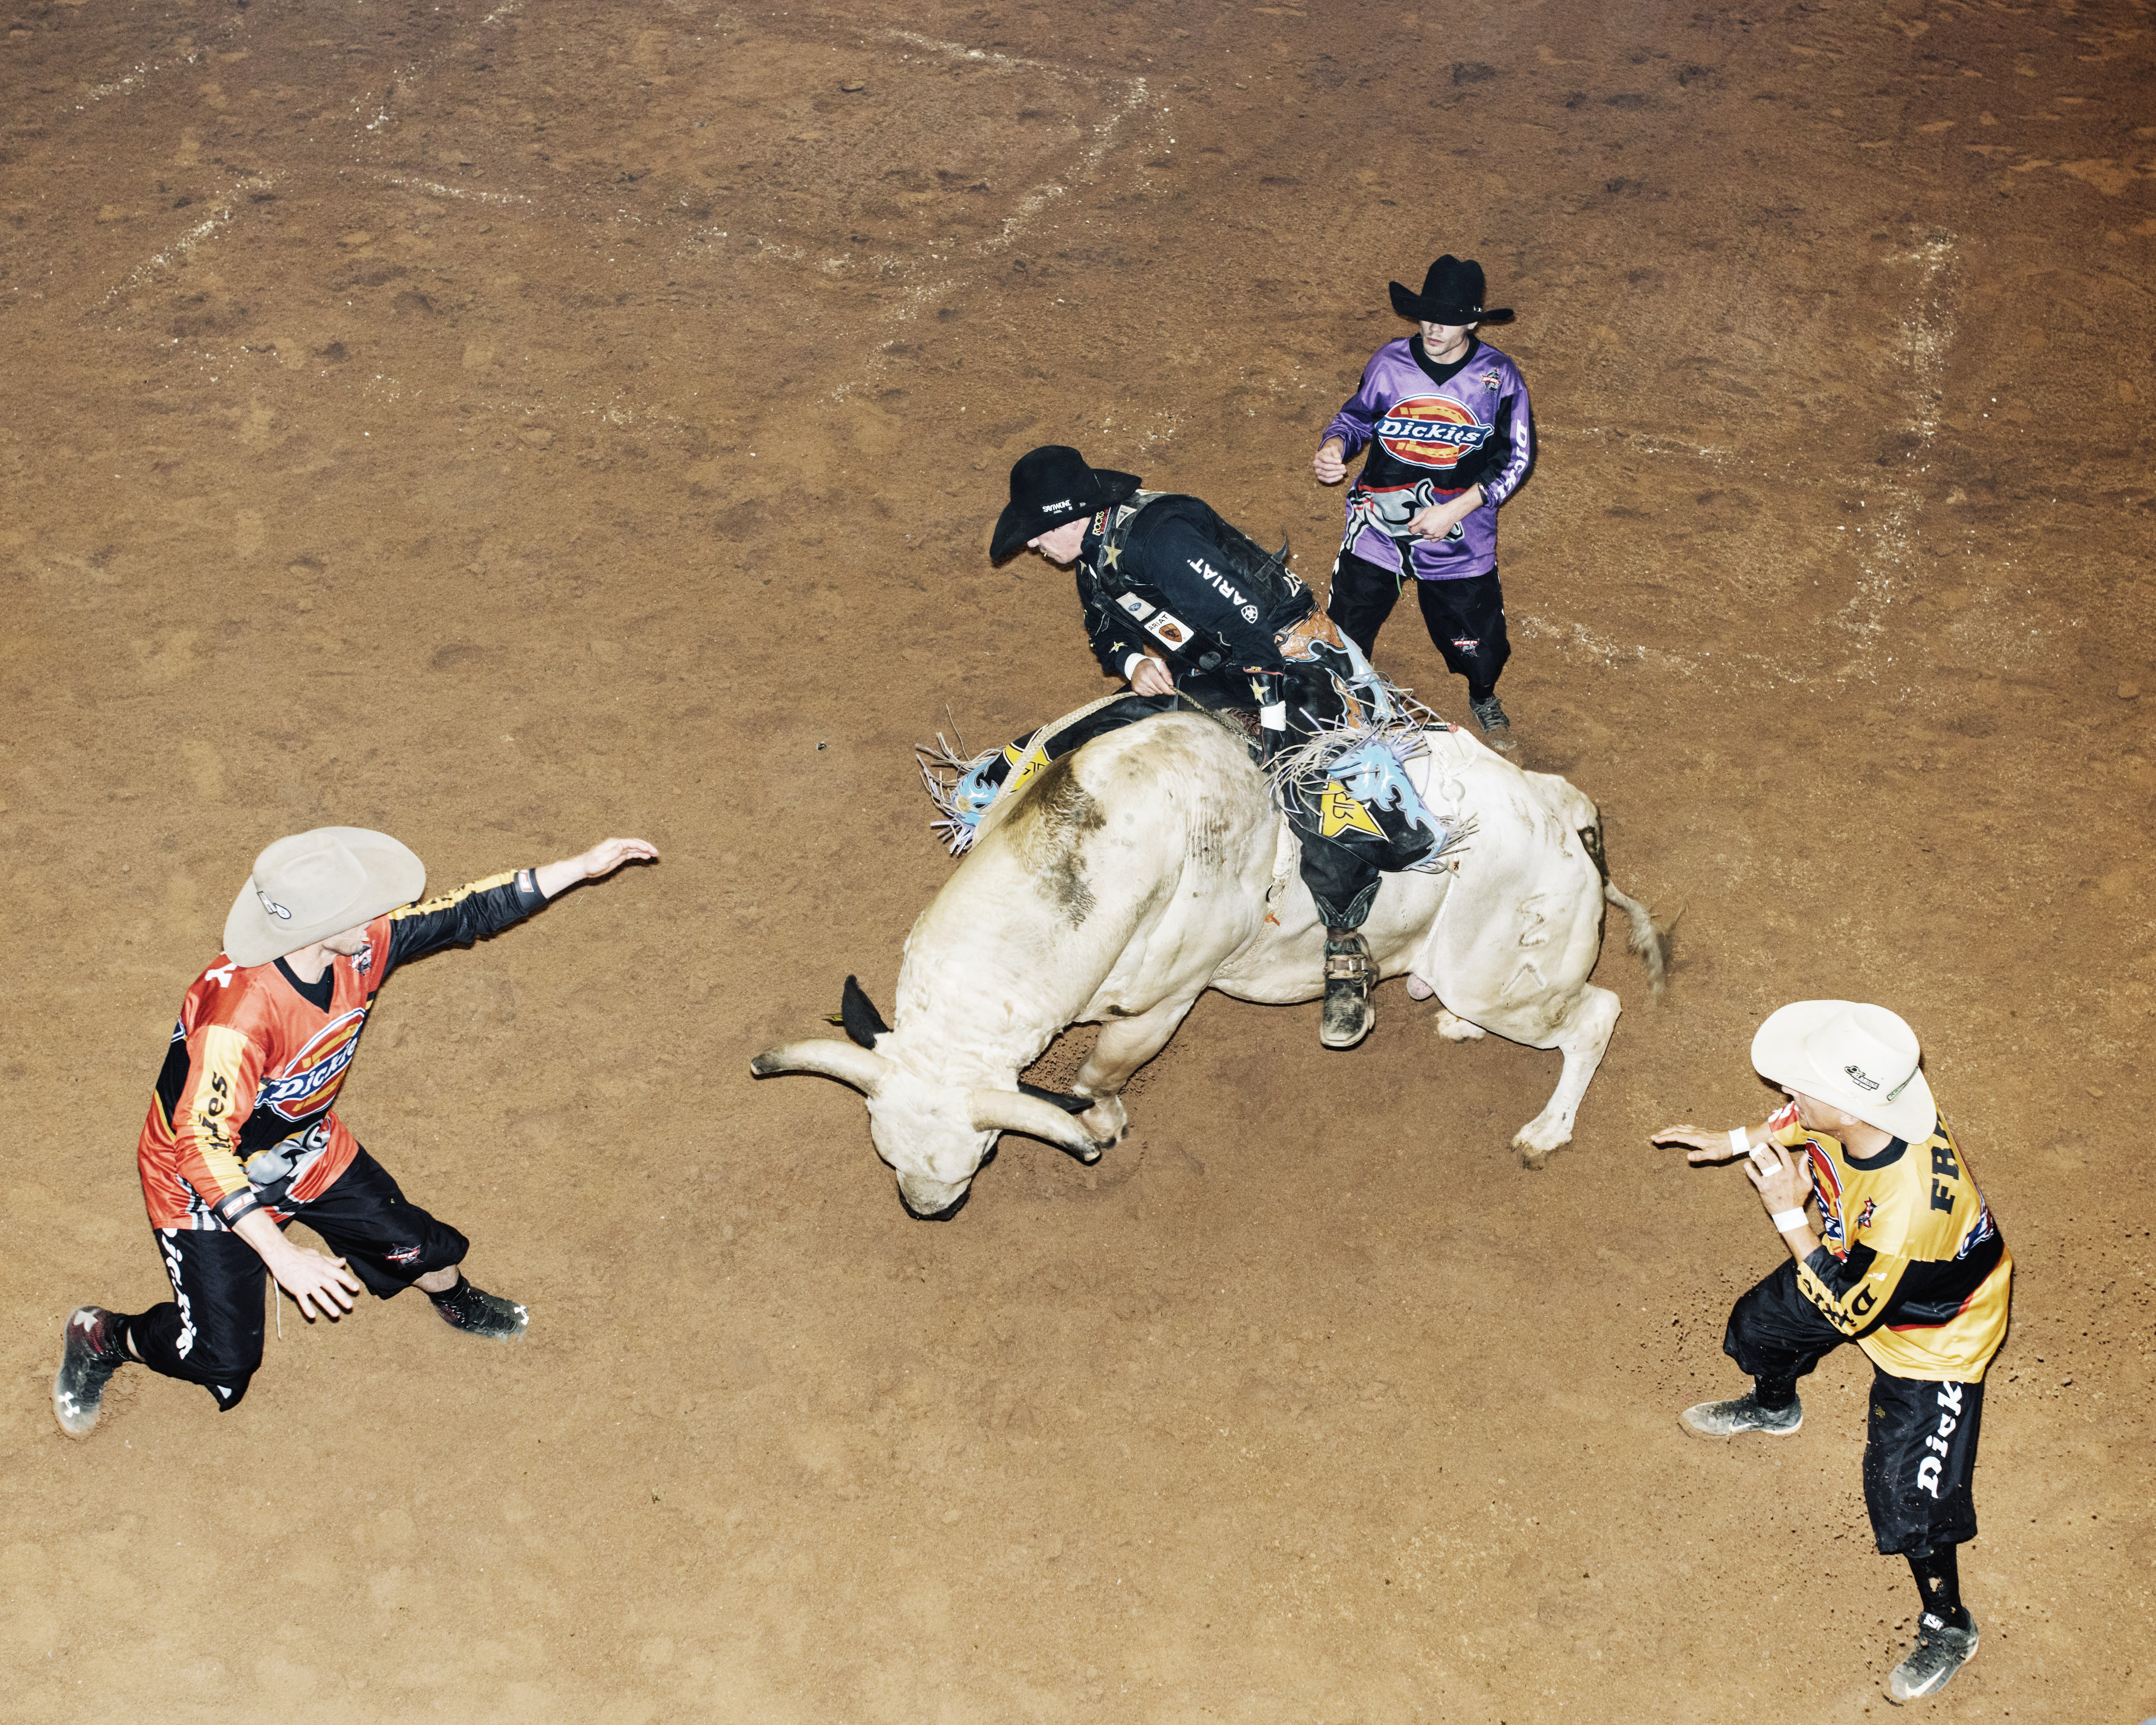 Three Bullfighters keep tabs on Bullrider Stormy wing at the Tucson Convention Center, Tucson, Arizona, Saturday, October, 3